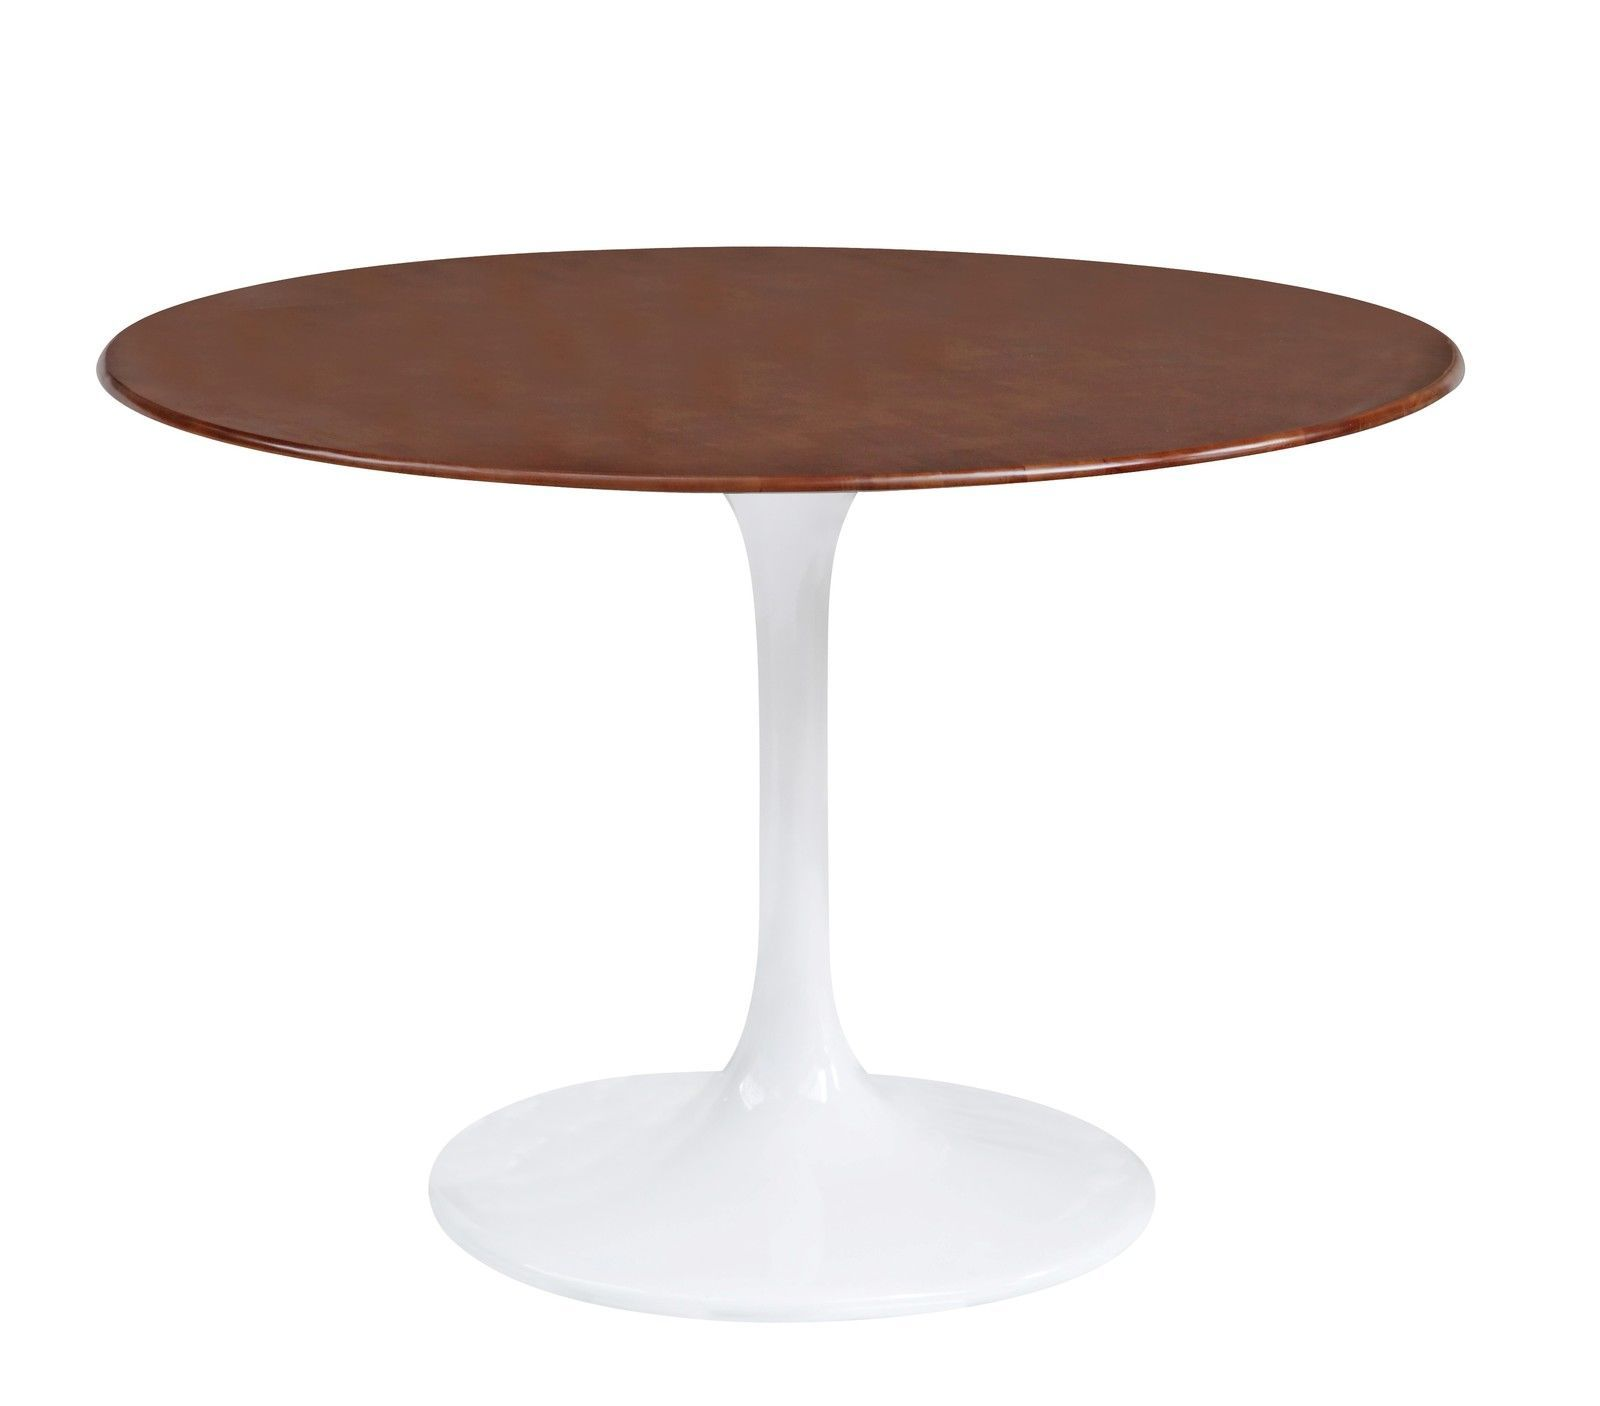 Saarinen Tulip Style 42 Round Walnut Top White Dining Table Tables